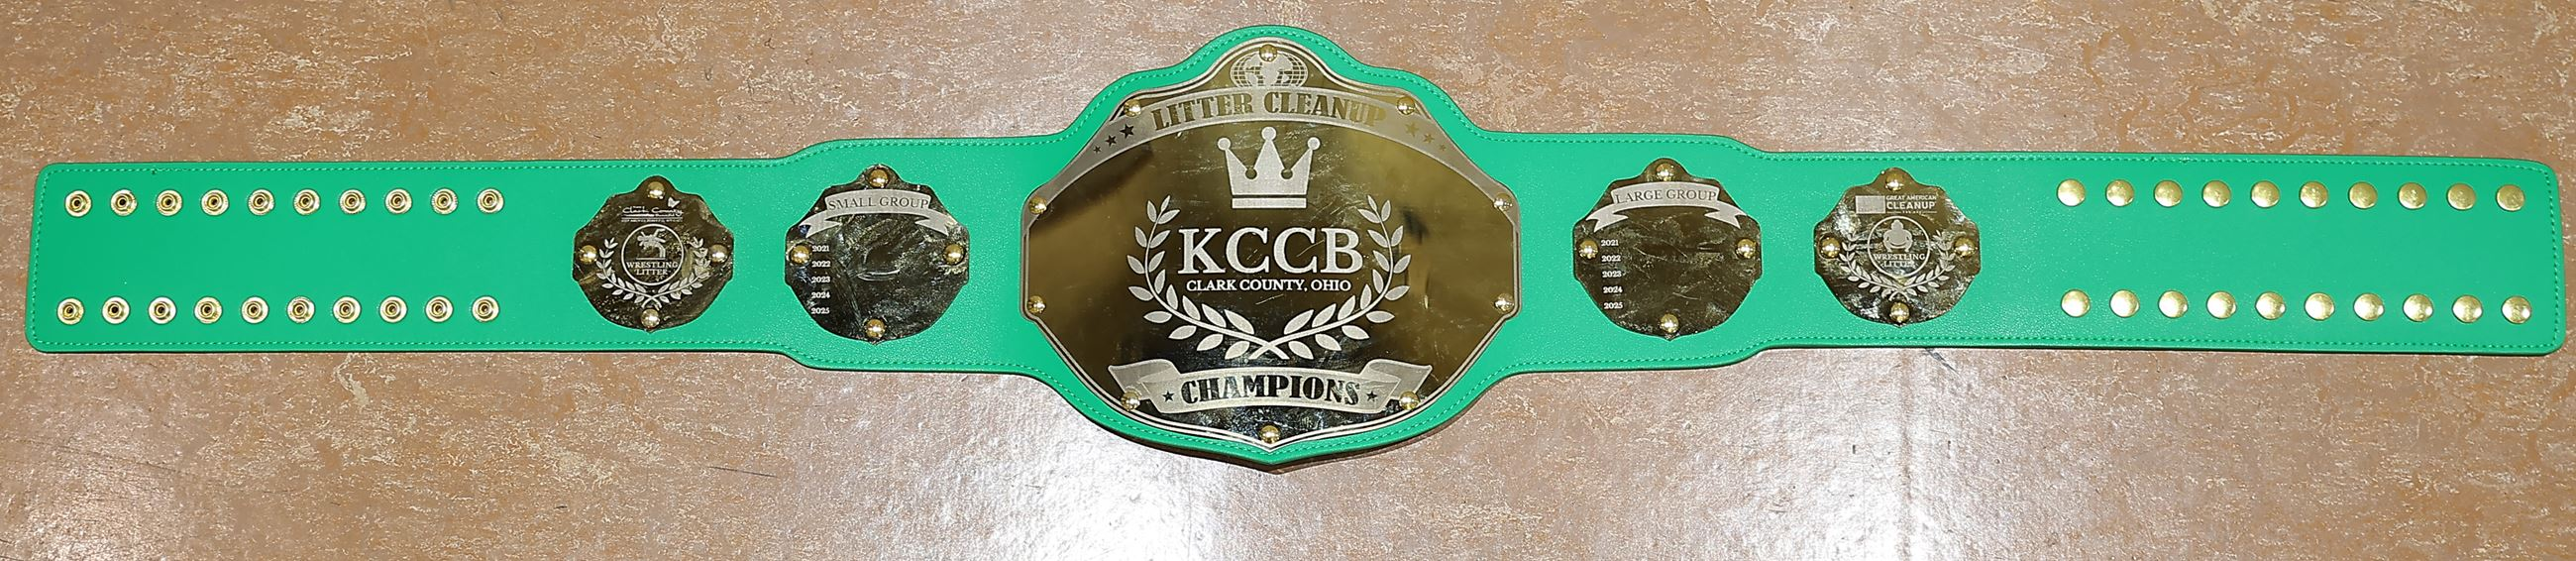 KCCB Litter Cleanup Championship Belt